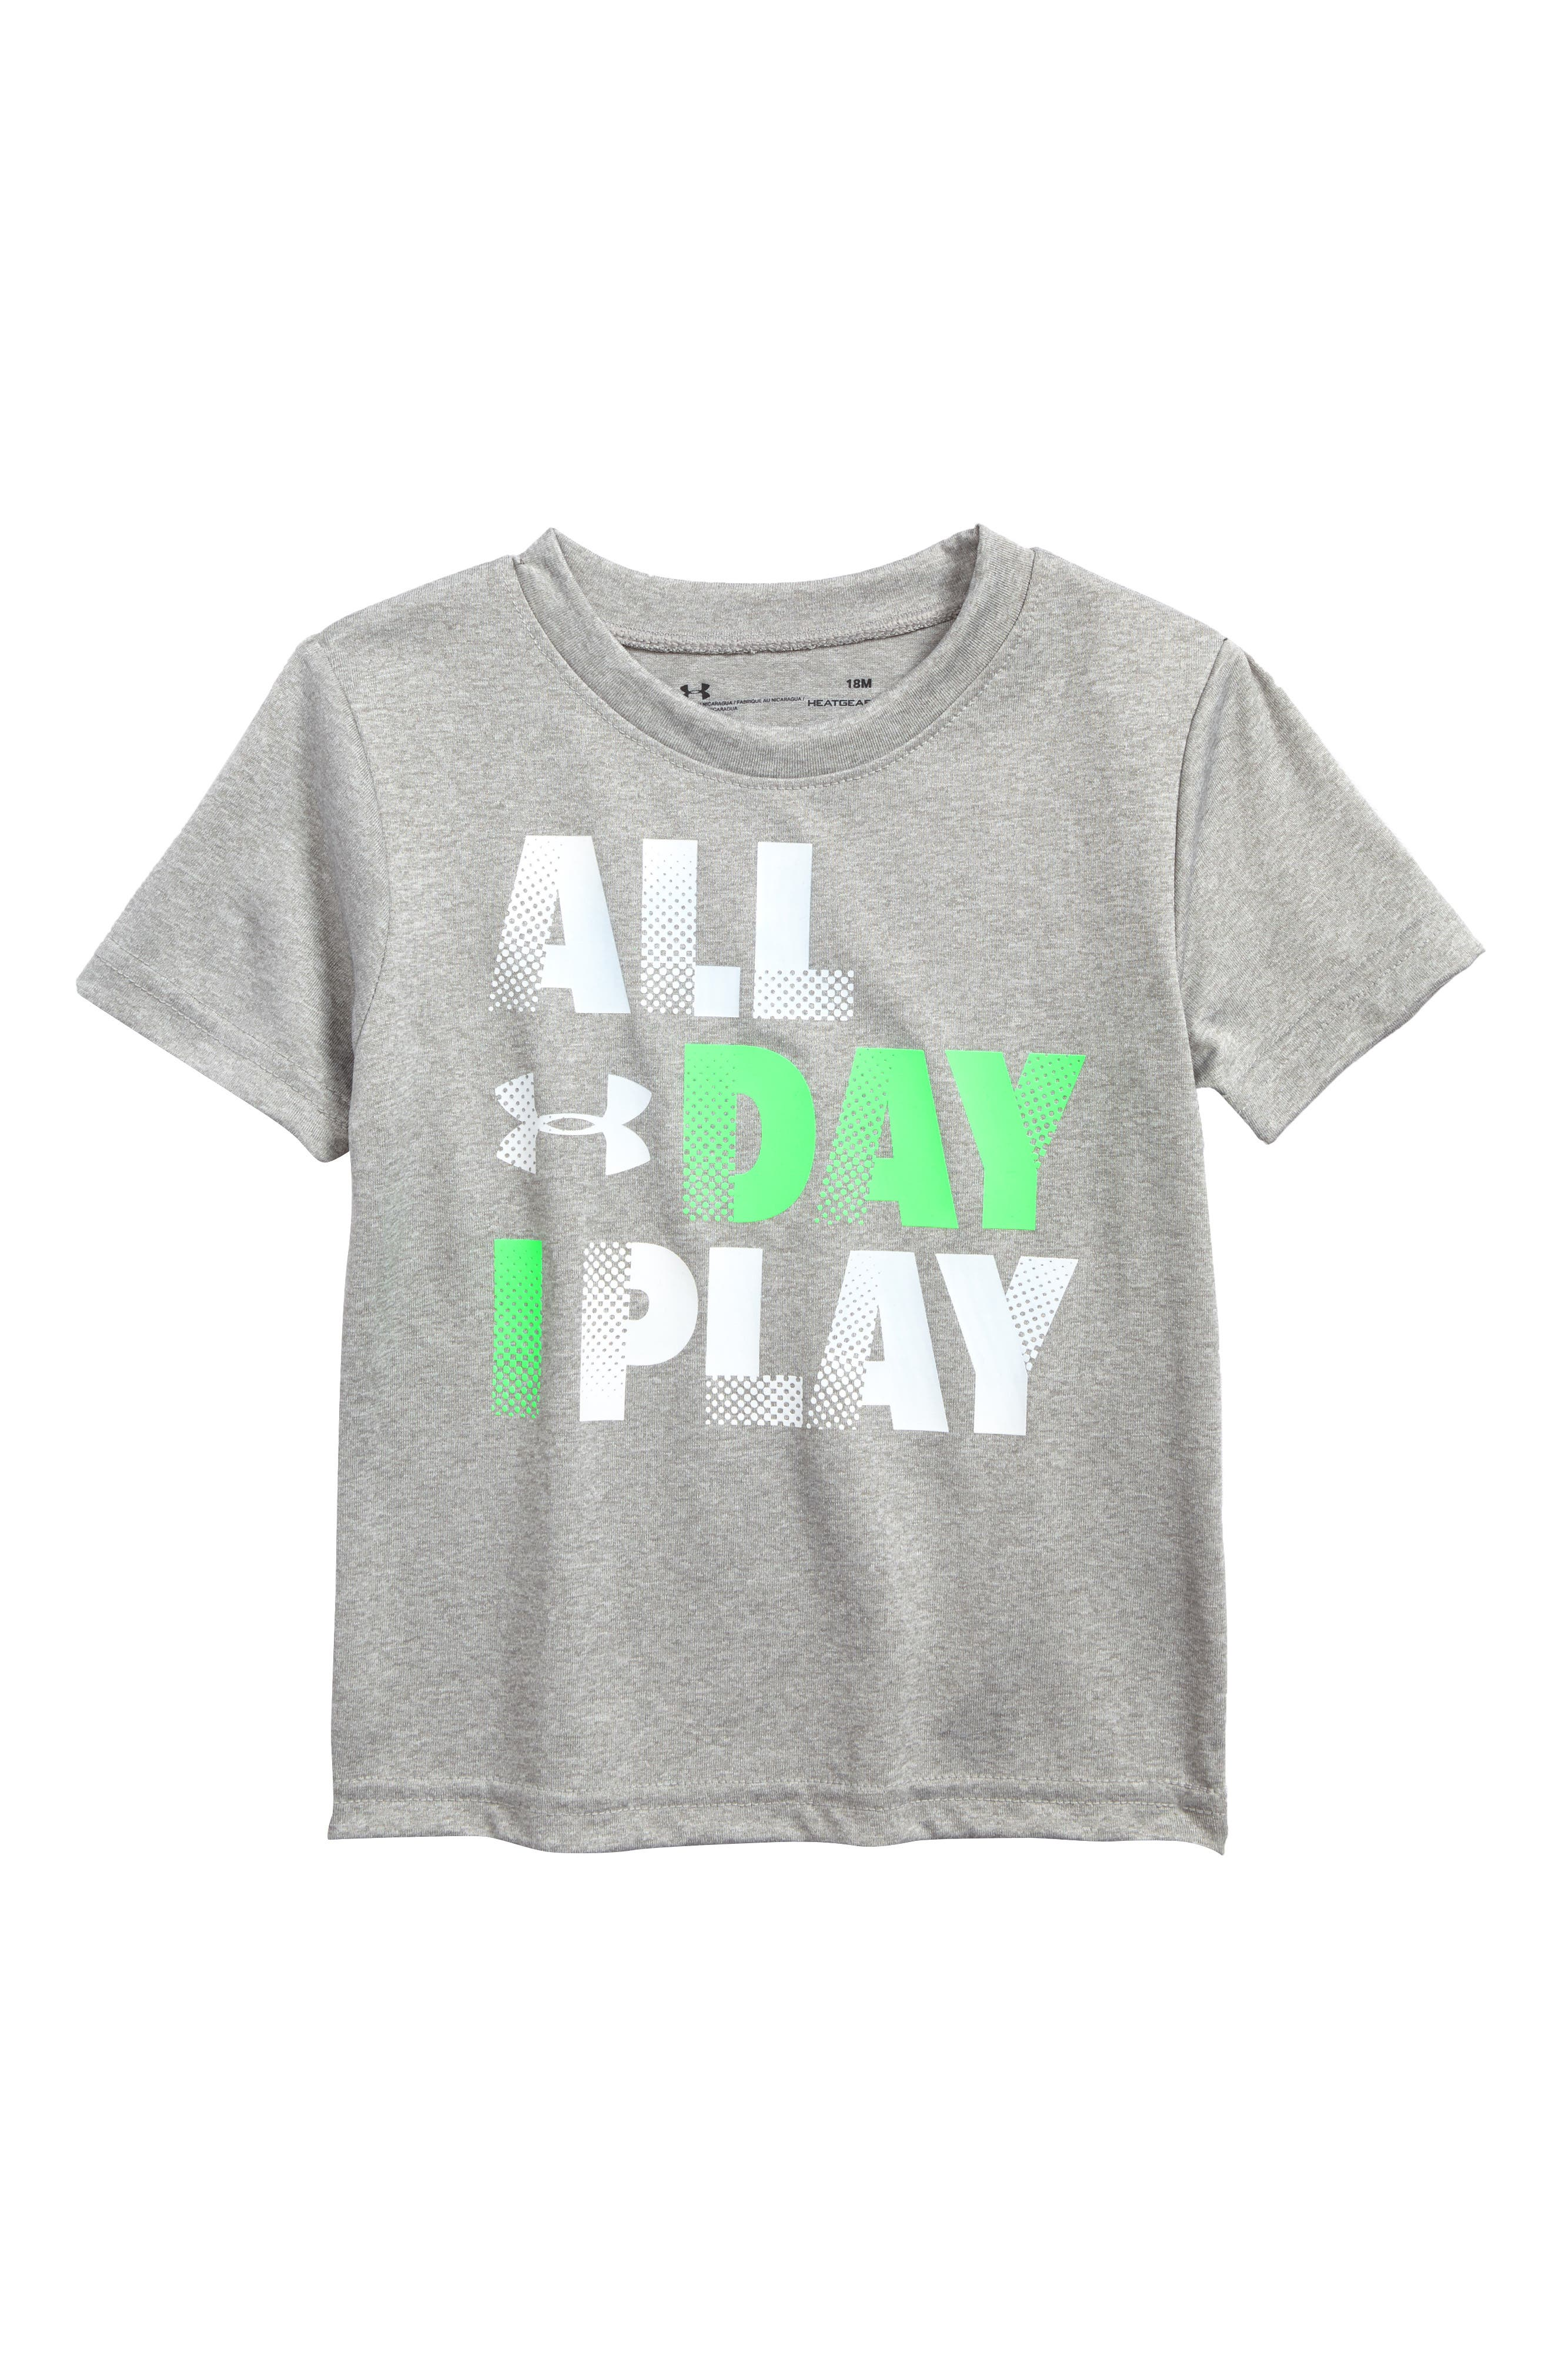 Main Image - Under Armour All Day I Play Graphic HeatGear® T-Shirt (Baby Boys)